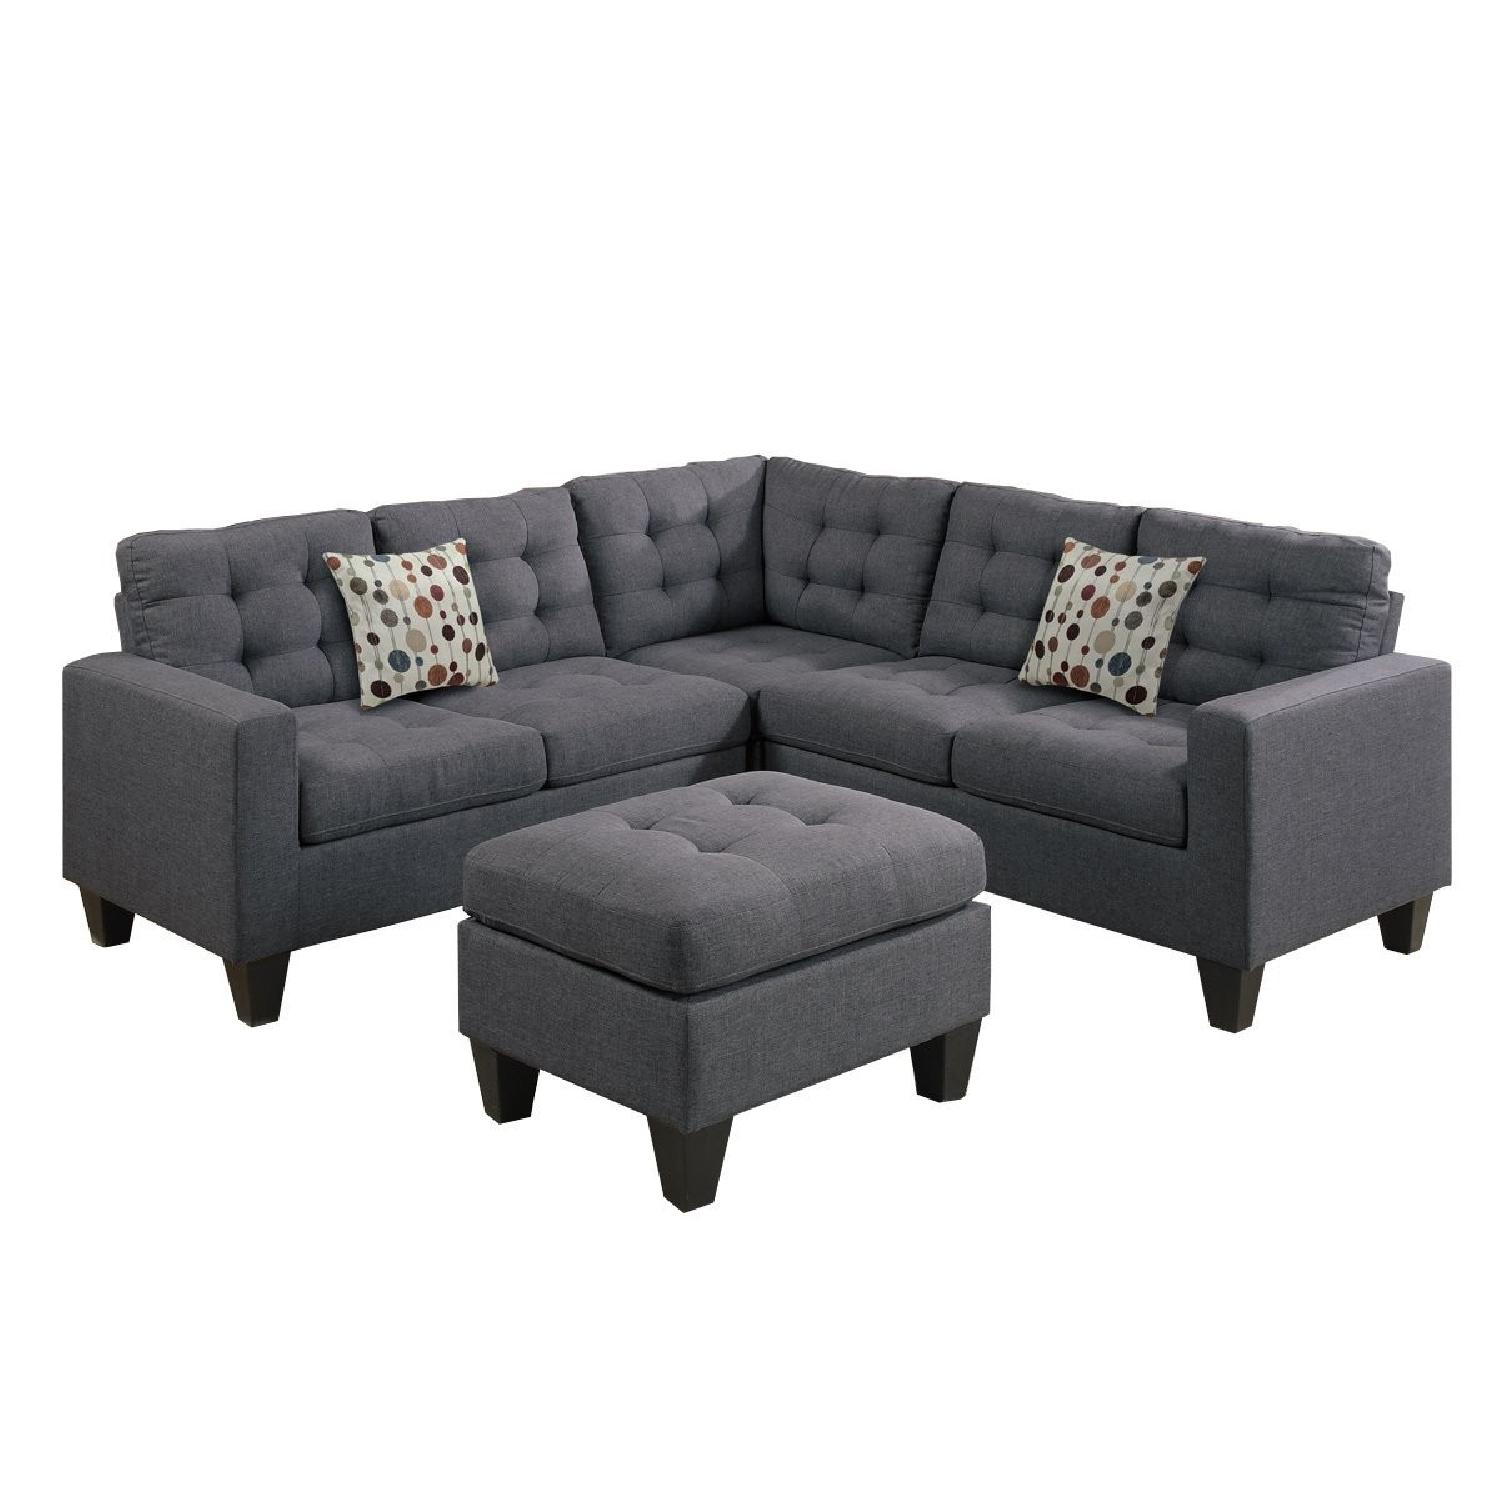 Blue Grey Fabric 4-Piece Sectional Sofa & Ottoman